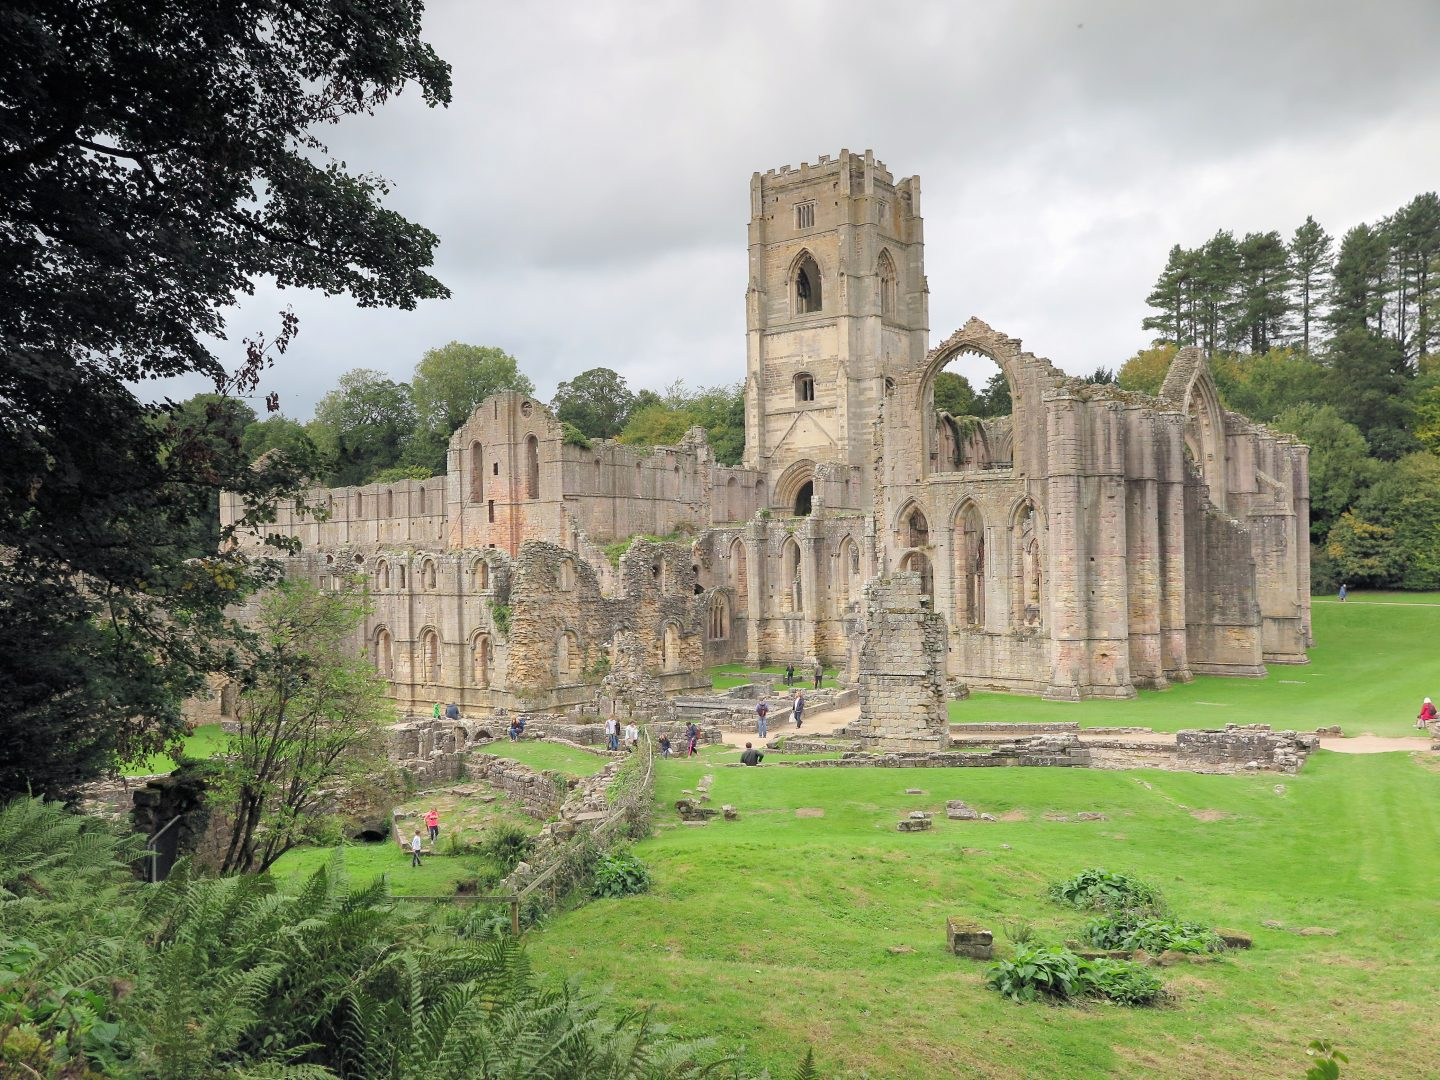 Yorkshire dales, family holiday in northern England, short break with kids in Yorkshire